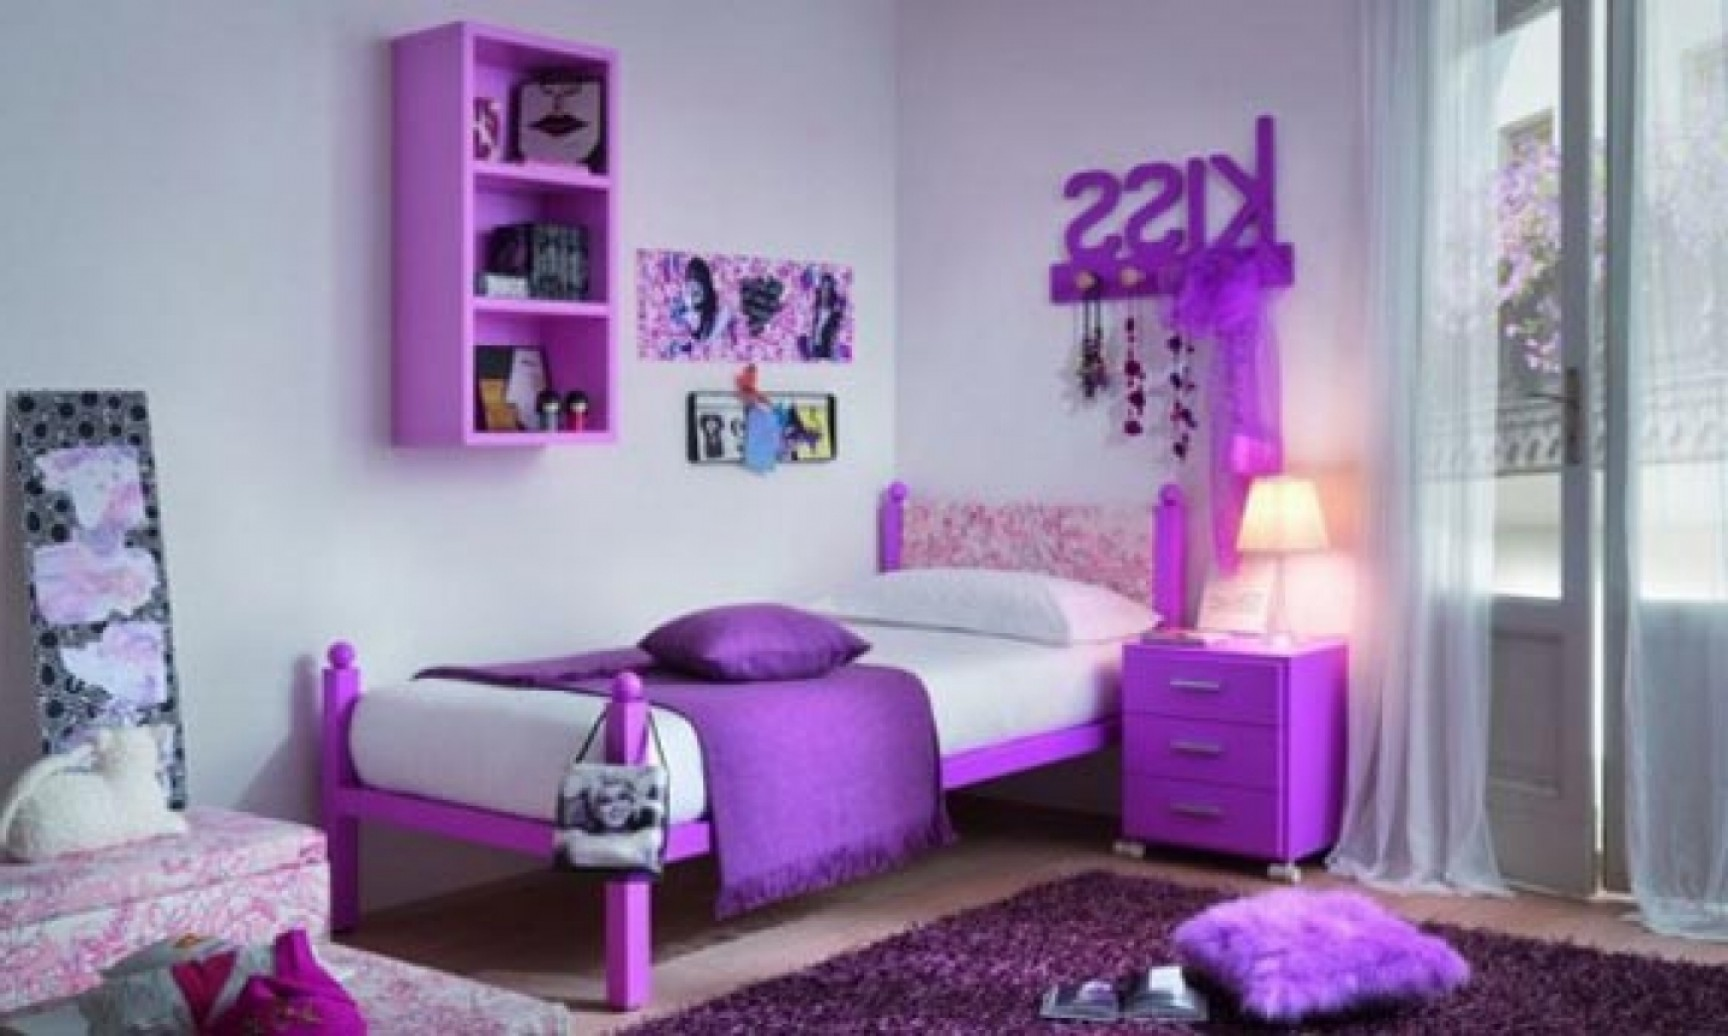 5 Tips in Small Bedroom Ideas For Teenagers - jpeo.com on Small Teen Bedroom Ideas  id=86520